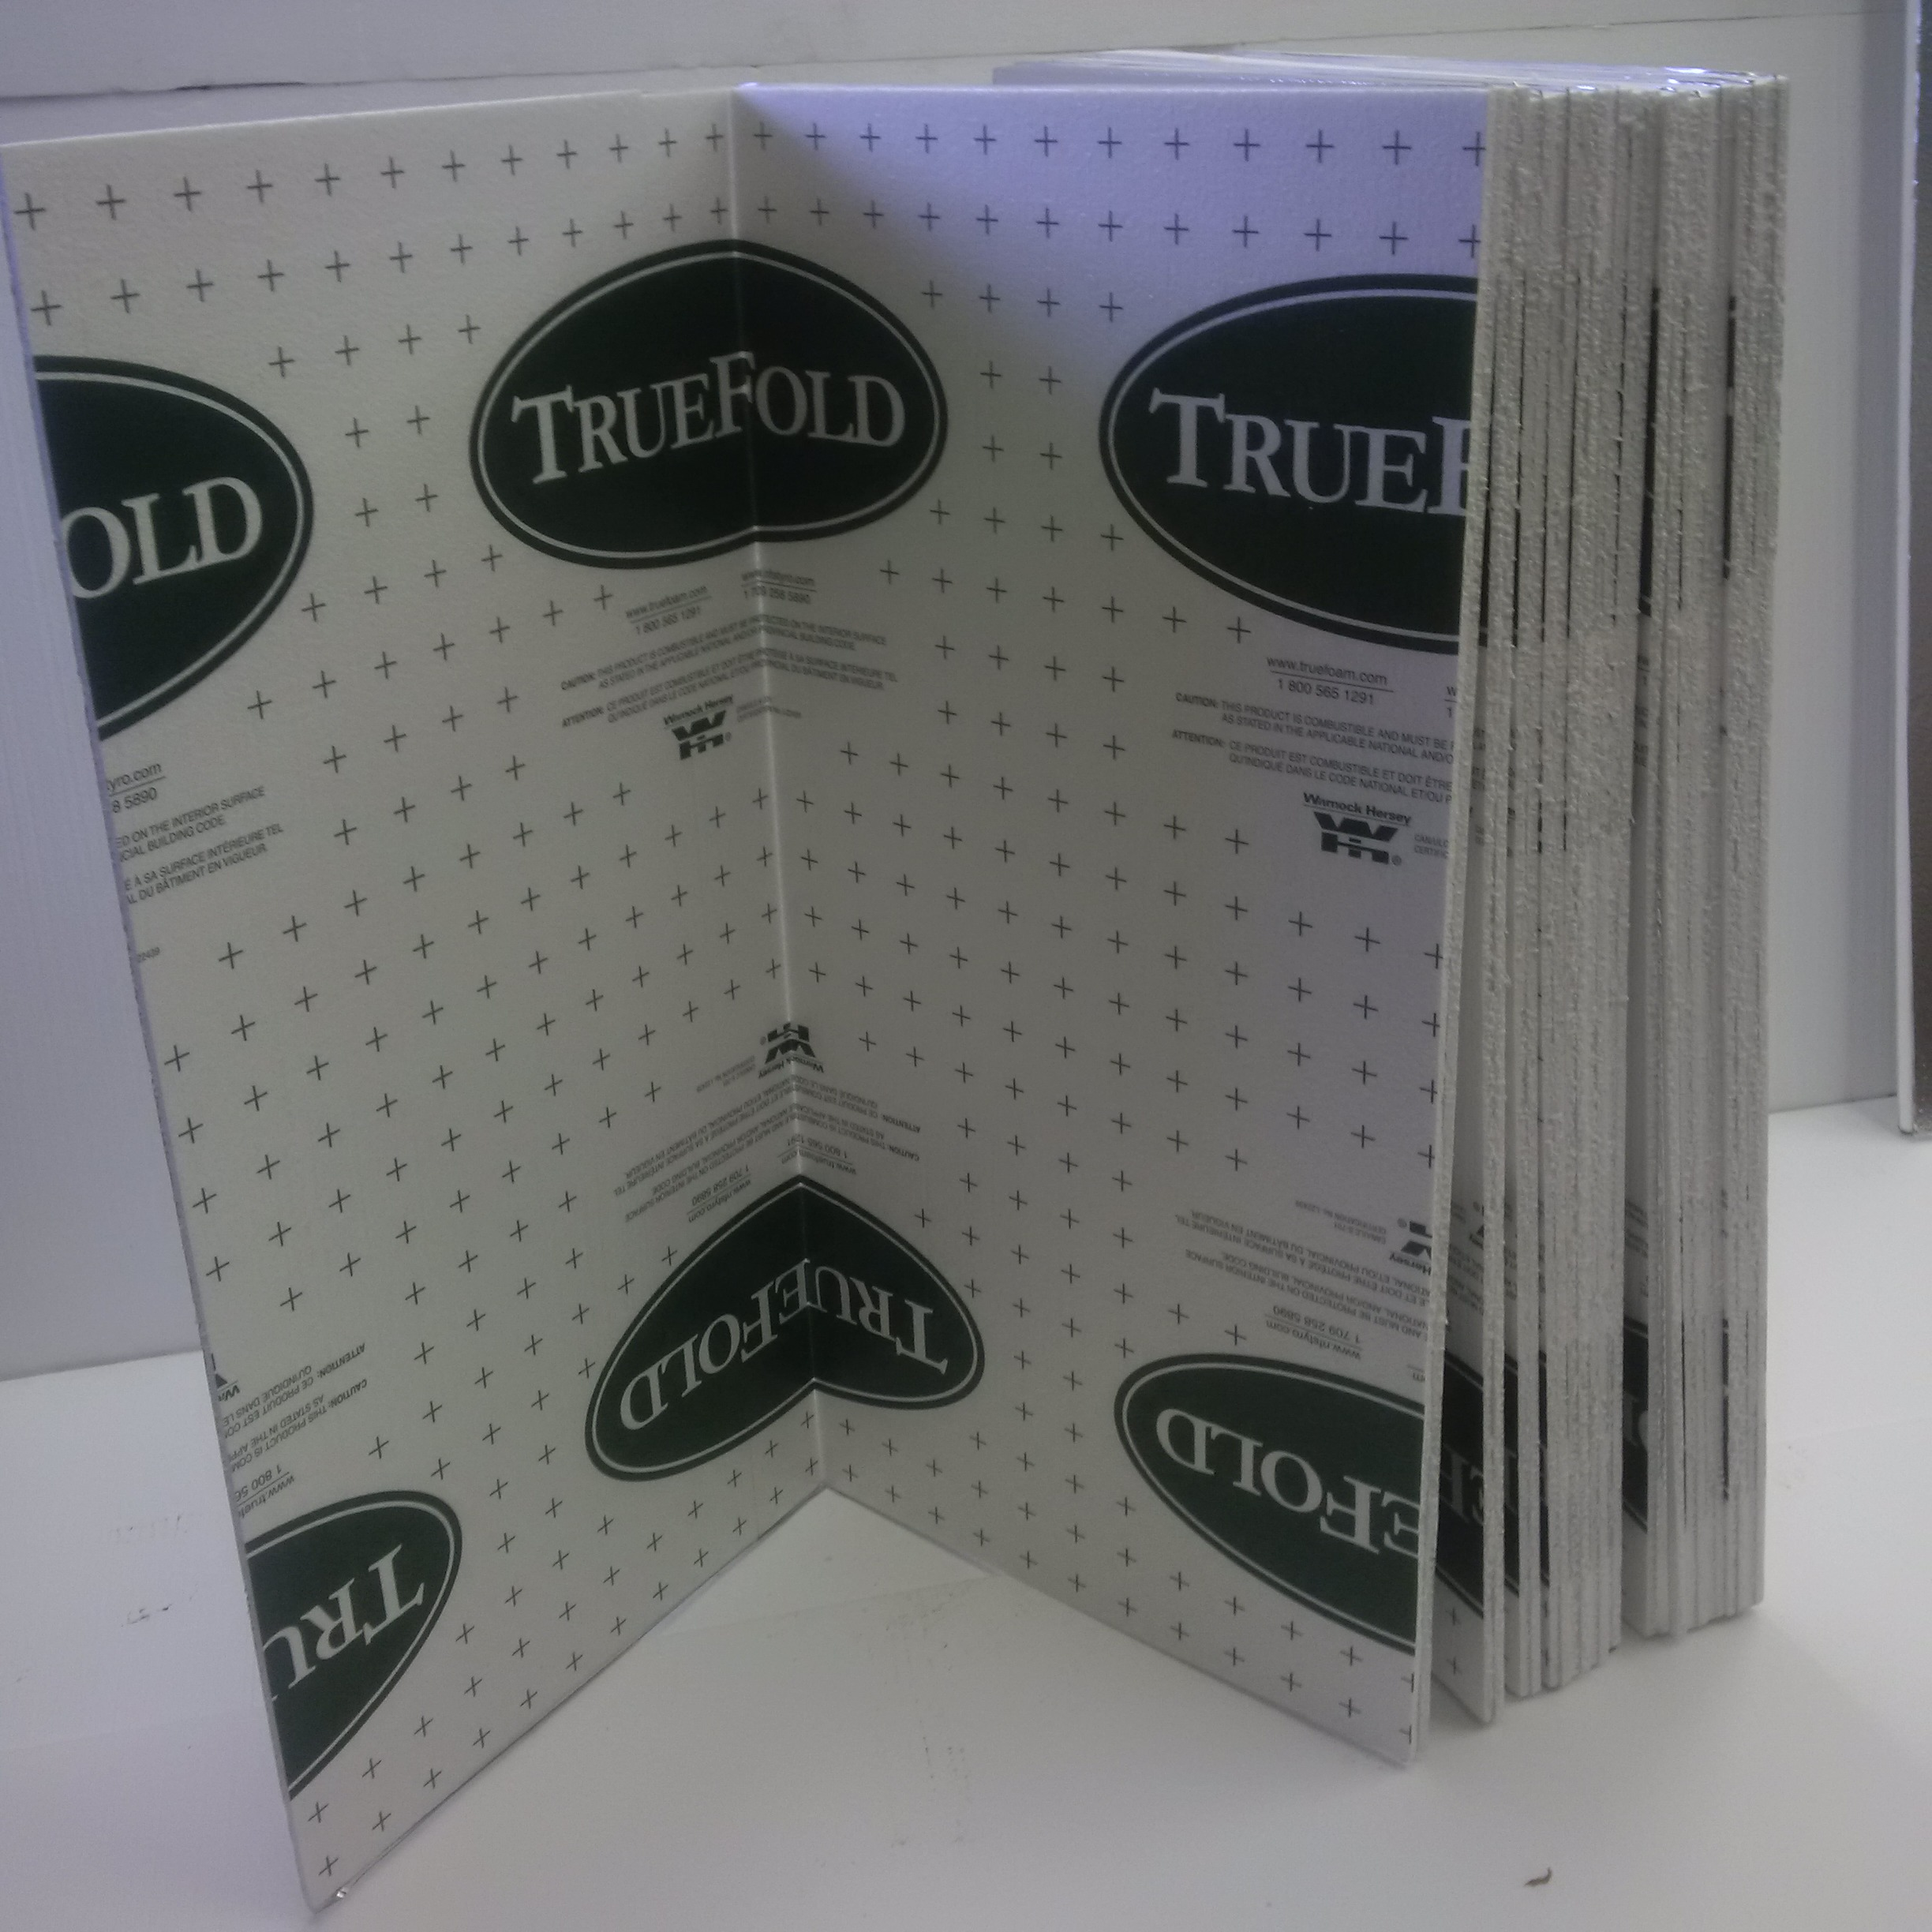 Truefold - Designed for installation under siding